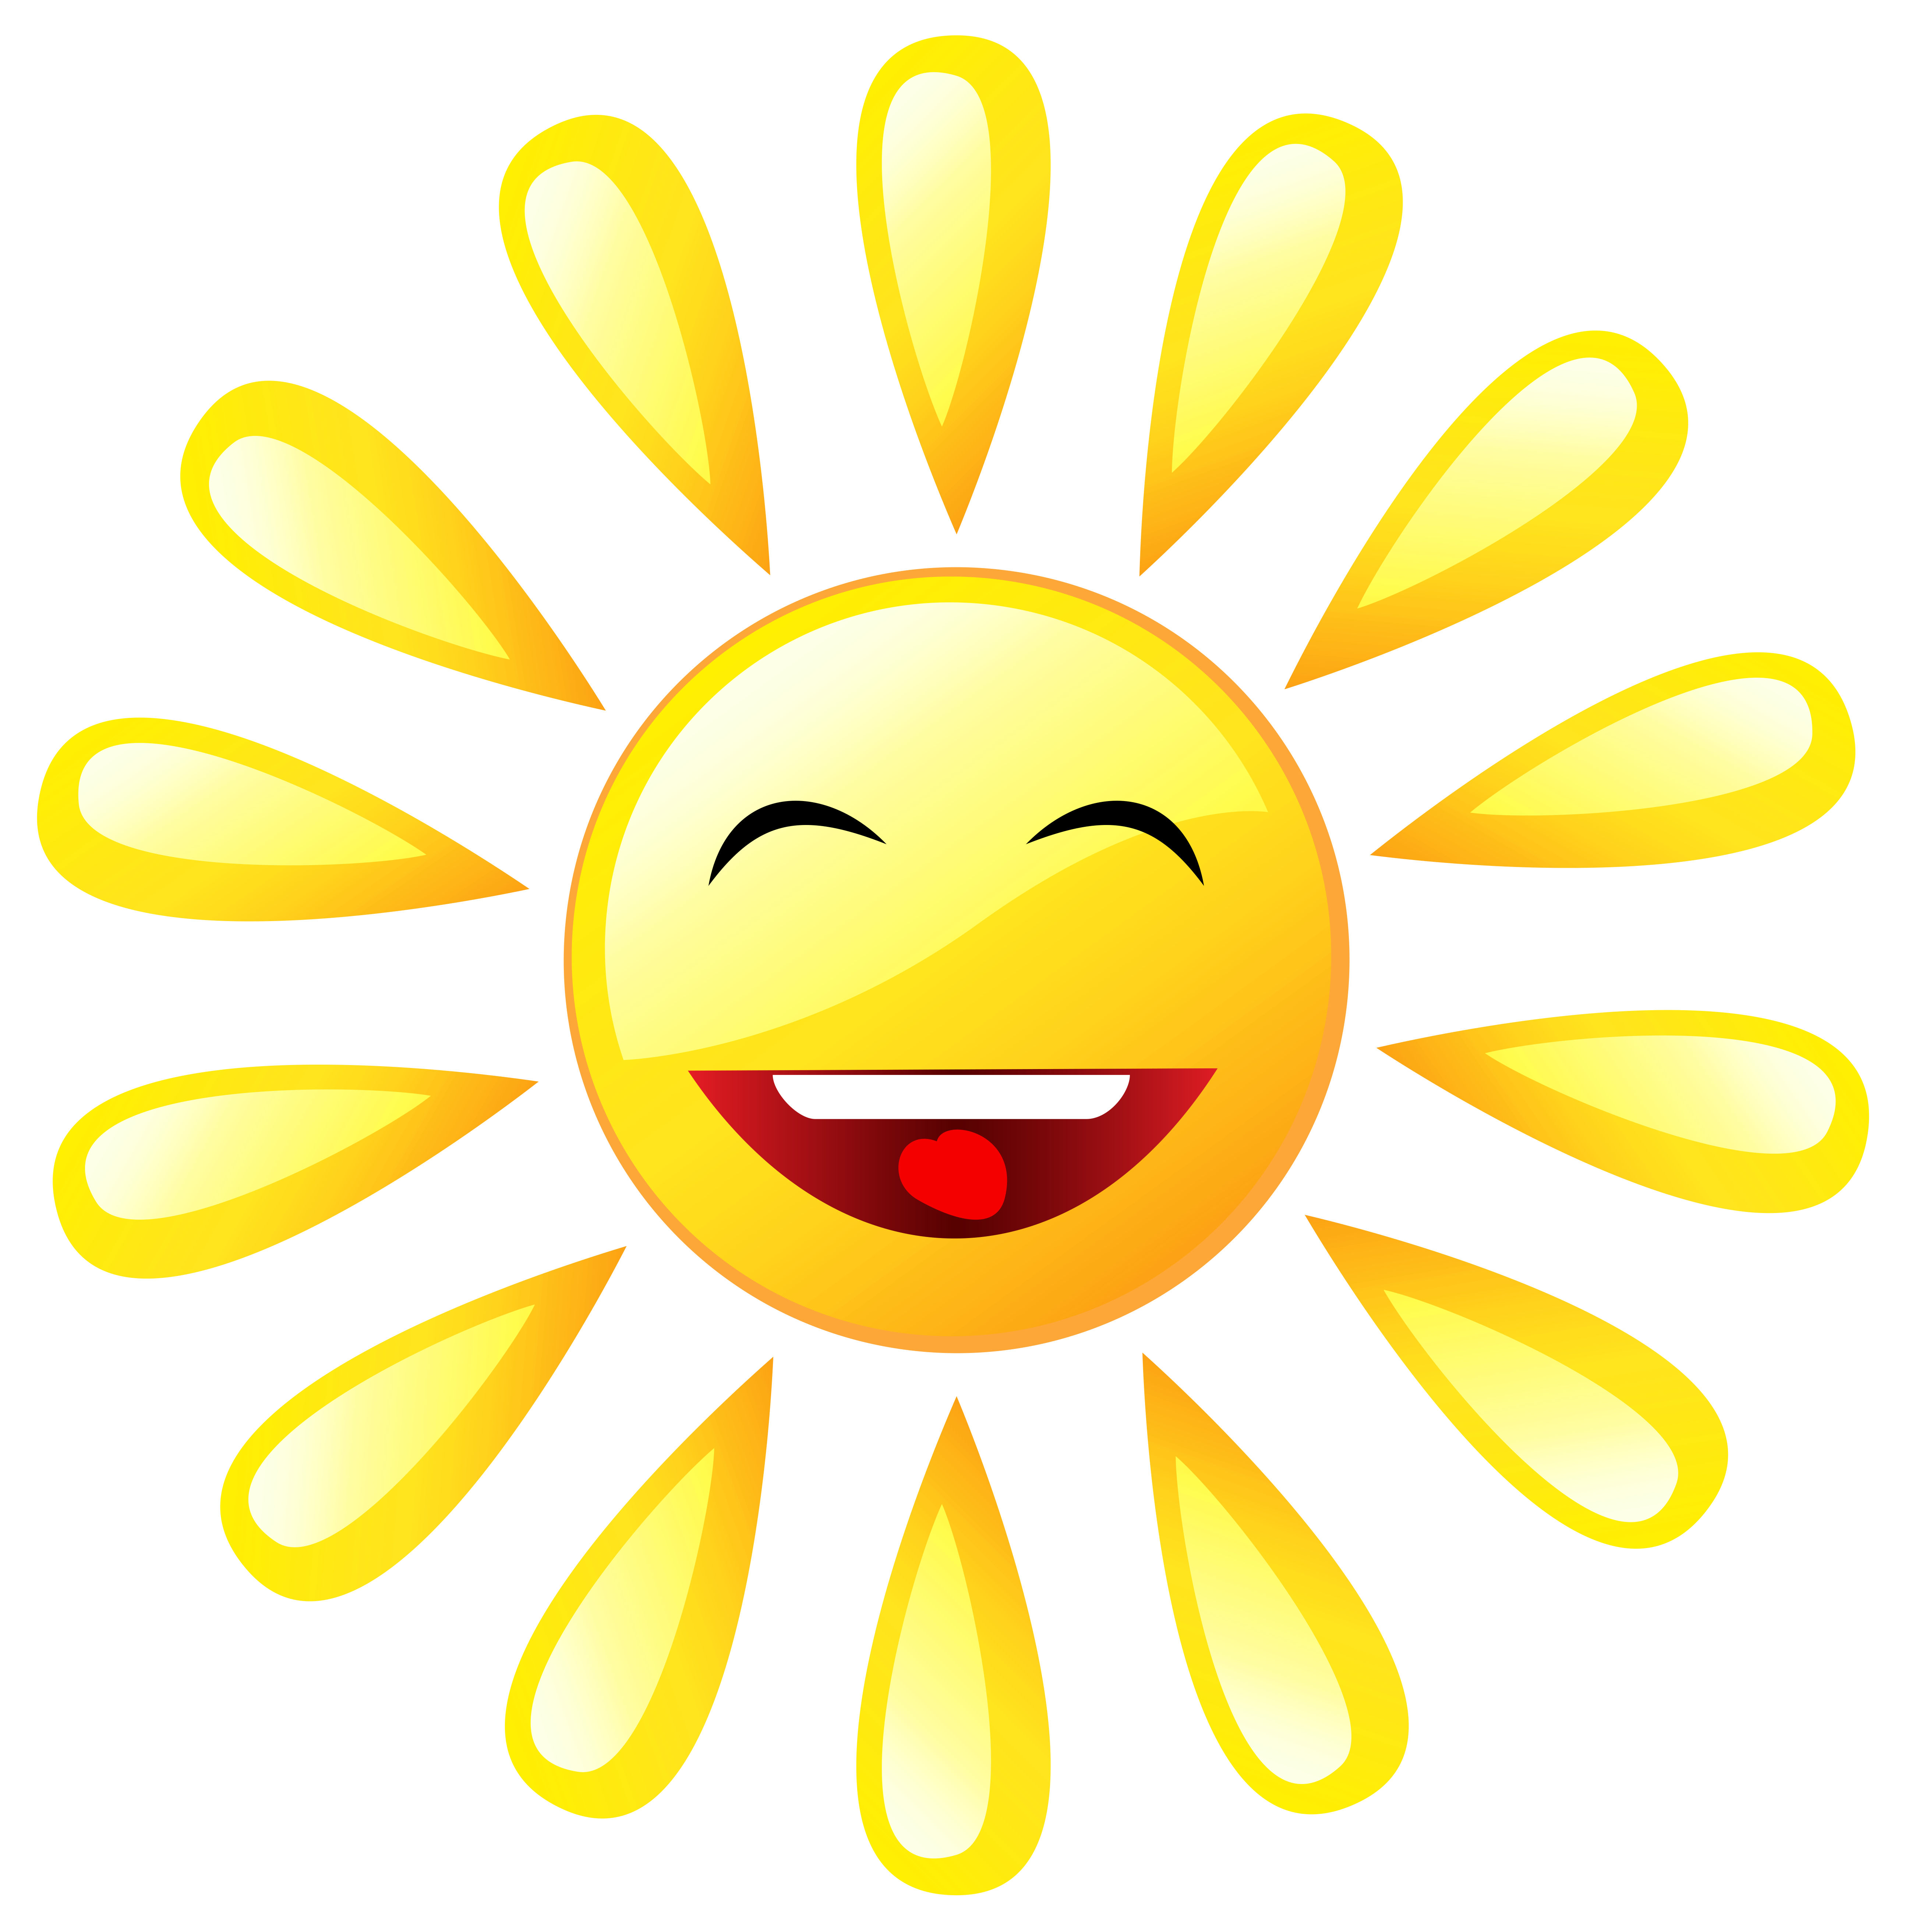 Black line smiling sun clipart jpg free Transparent Cartoon Sun PNG Picture | Gallery Yopriceville - High ... jpg free